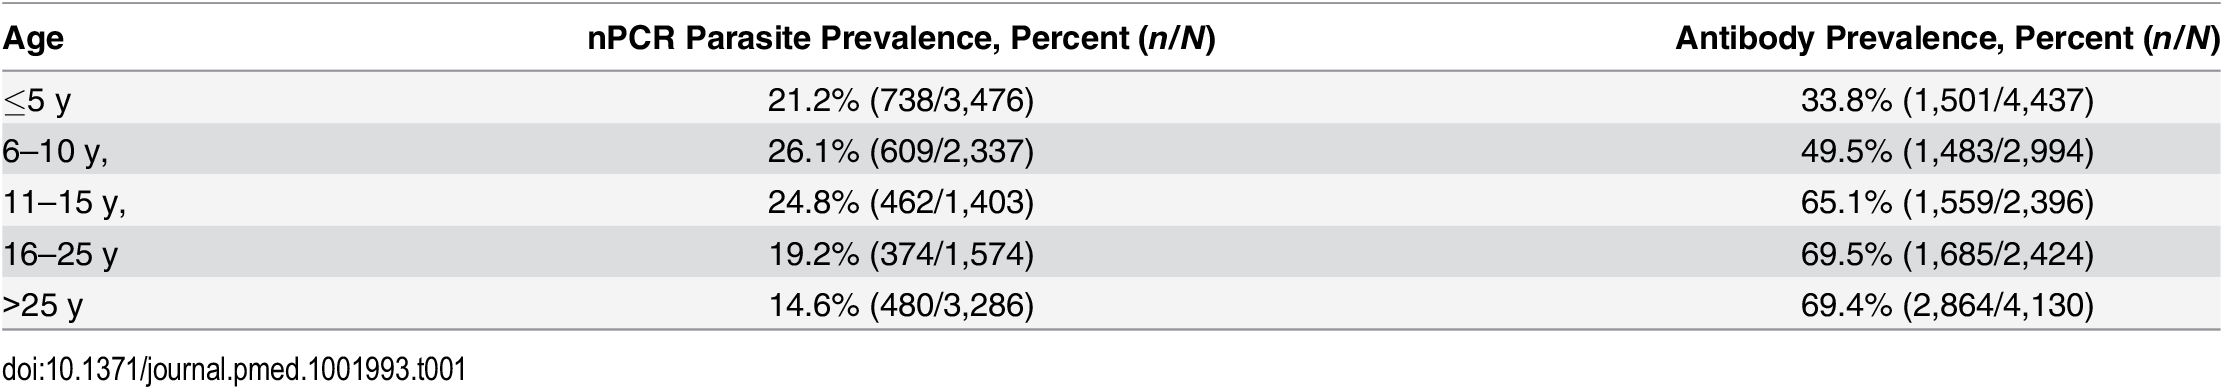 Parasite prevalence and antibody prevalence in relation to age in the cross-sectional community survey in Rachuonyo South District in June–July 2011 that was conducted for hotspot detection.